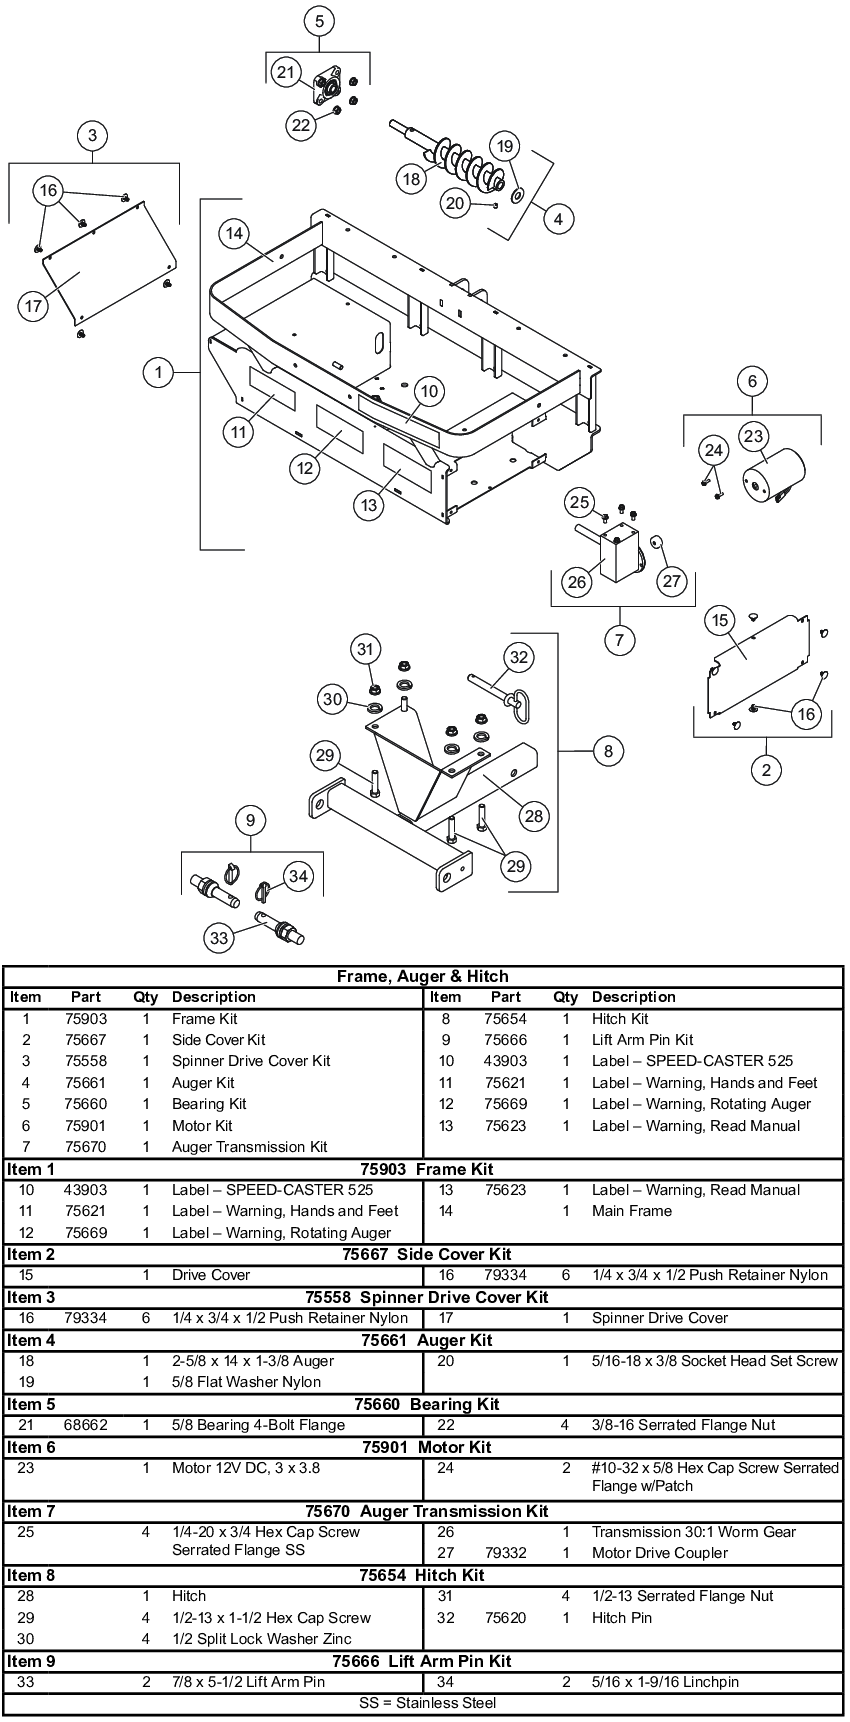 Fisher Speed-Caster 525 Frame, Auger, Hitch Parts Diagram